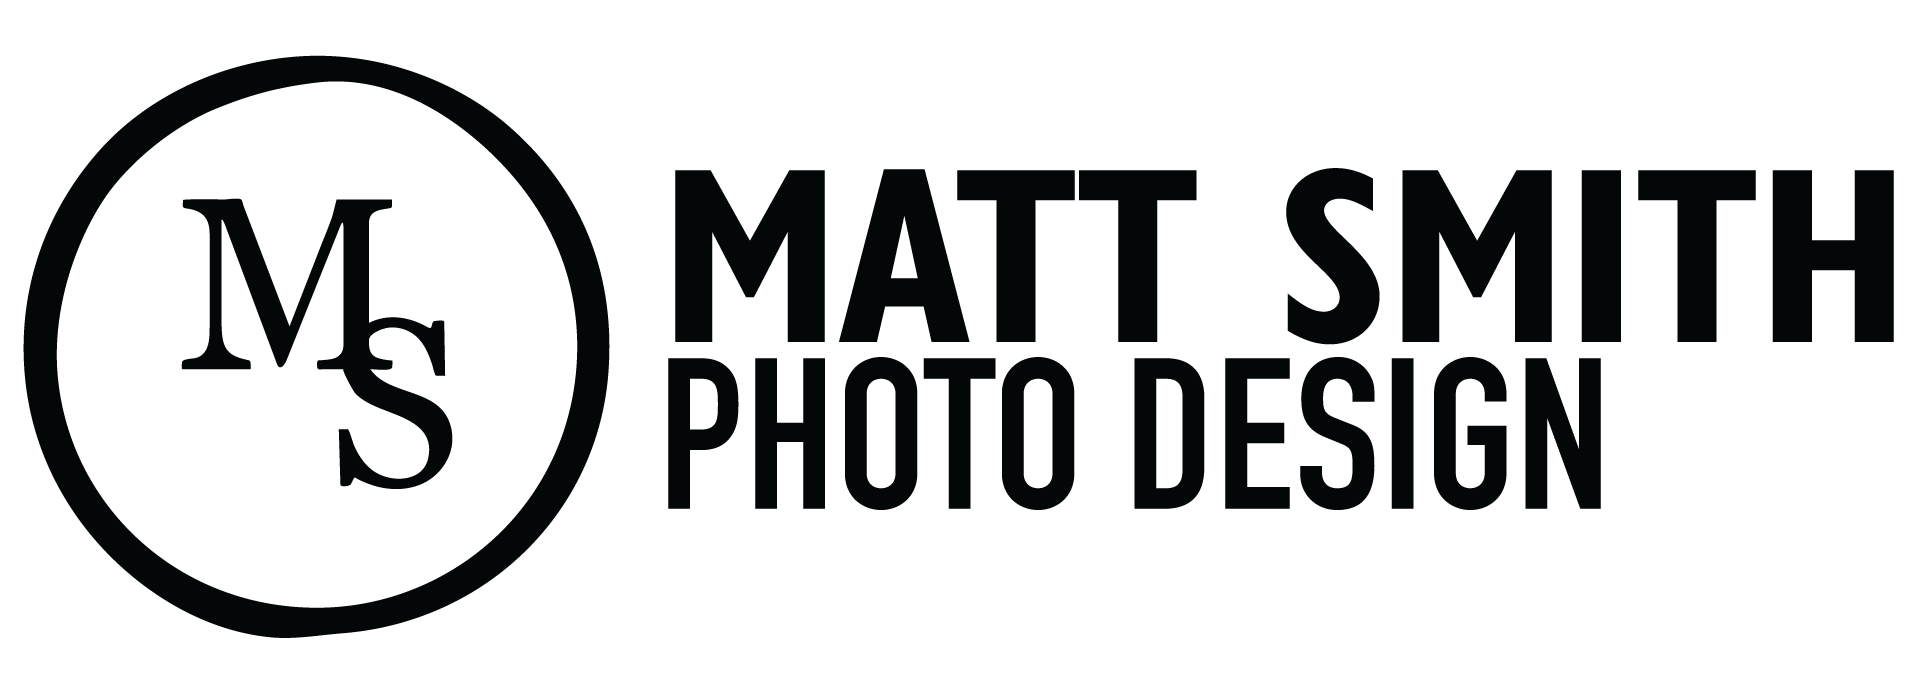 Matt Smith Photo Design